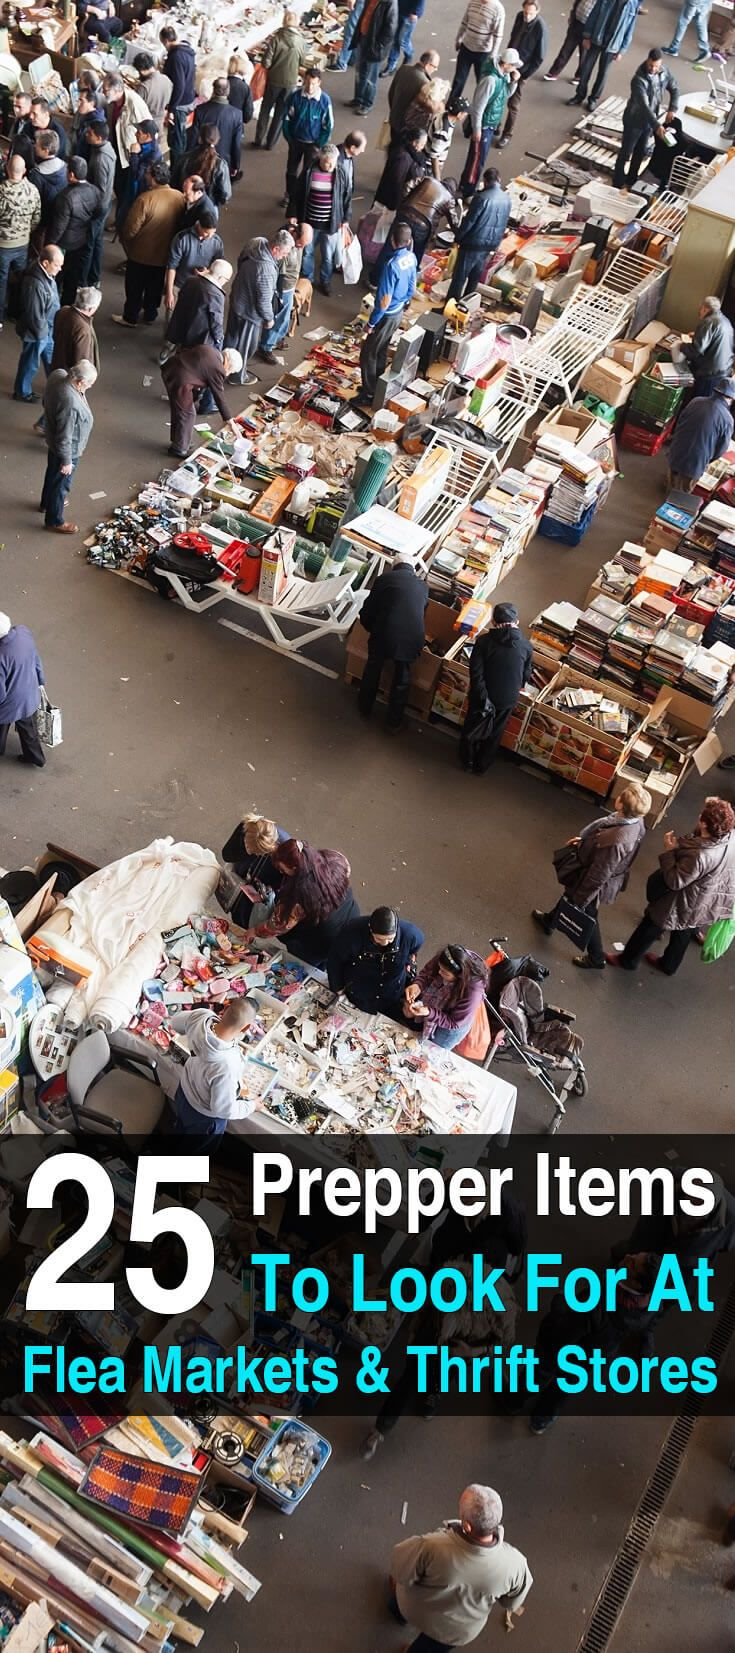 If you\'re interested in preparedness, flea markets and thrift stores can be goldmines. You can get prepper items for a fraction of the cost.